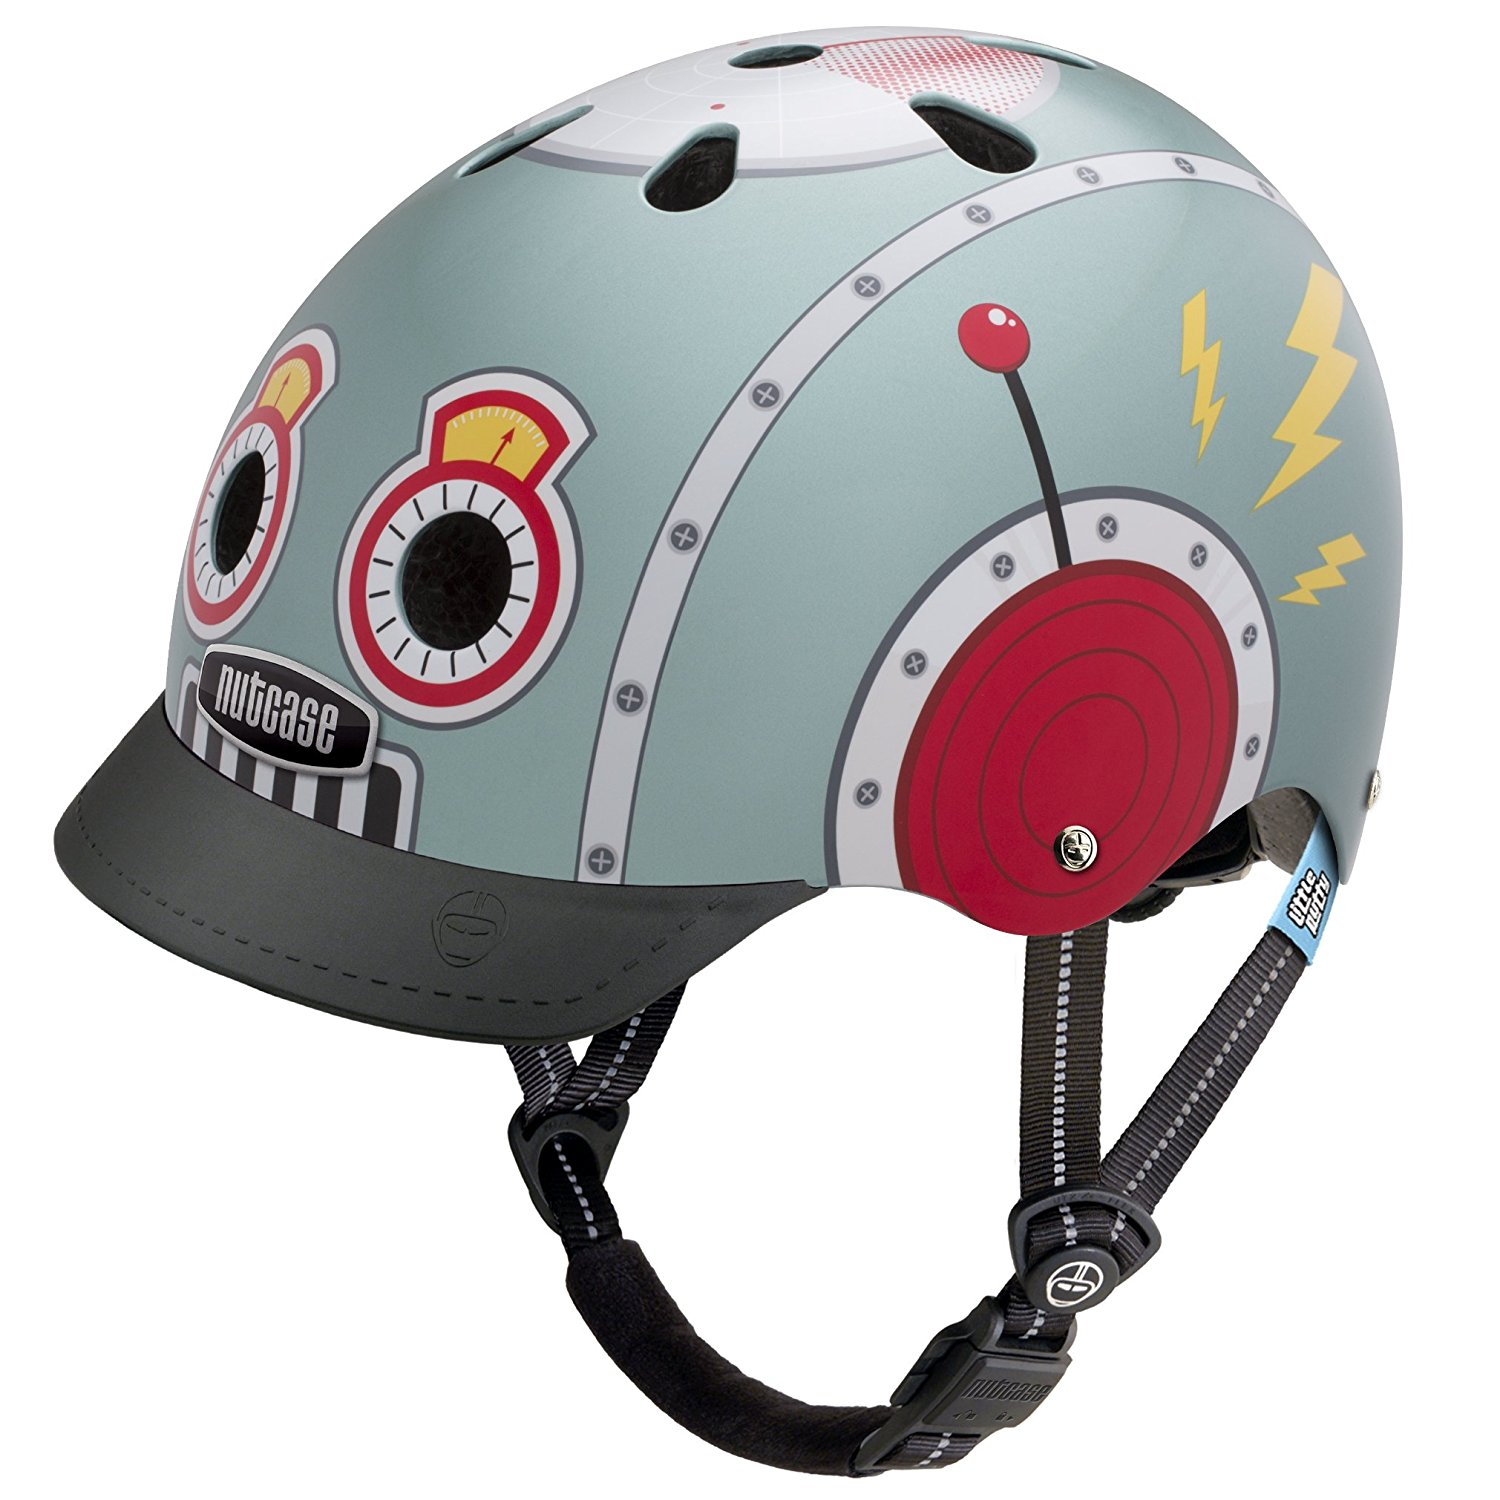 Kids bike helmet with robot graphics